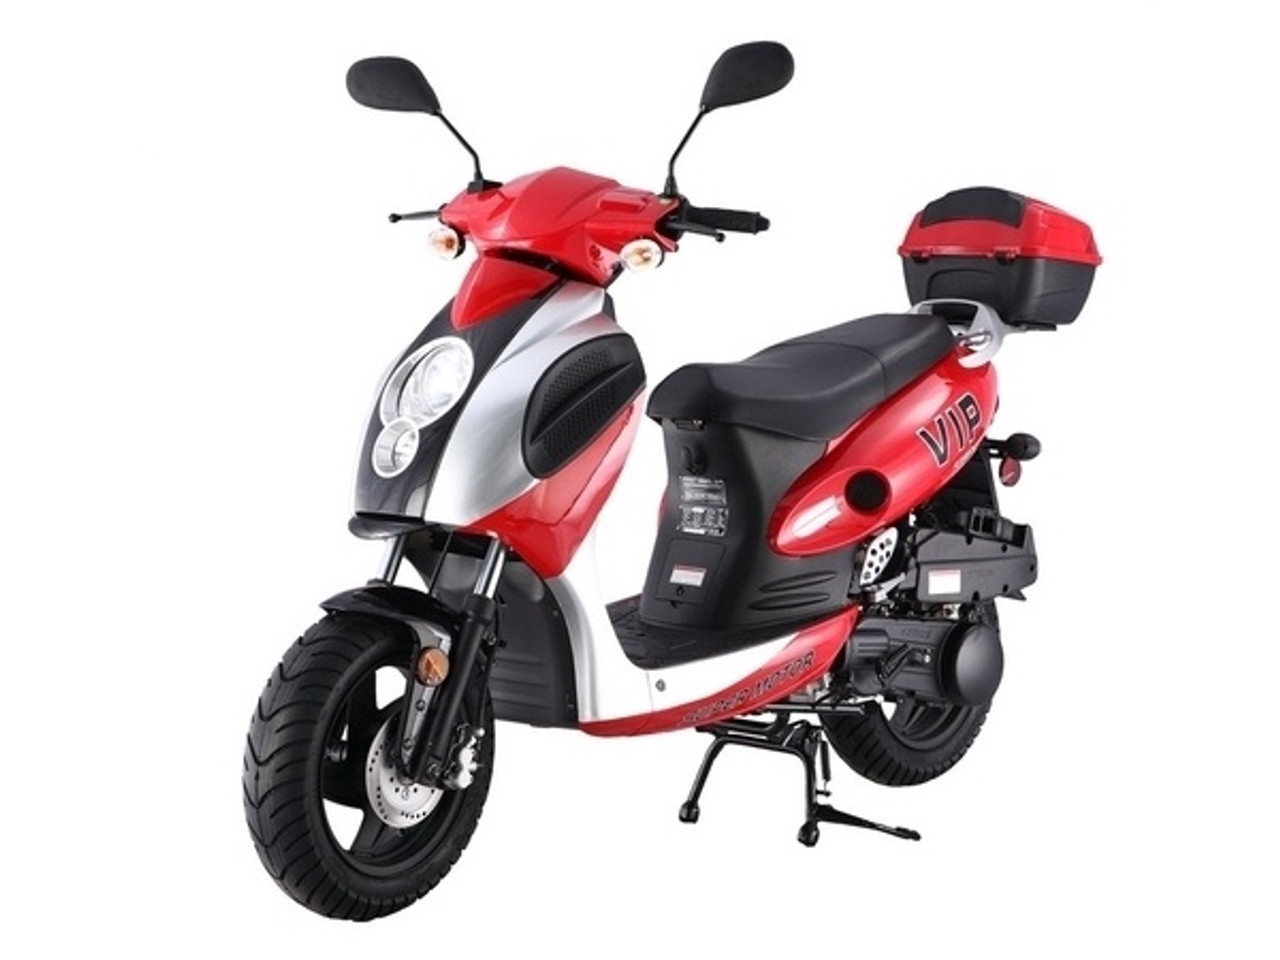 Taotao Power-Max 150CC Scooter Comes With Free Matching Trunk